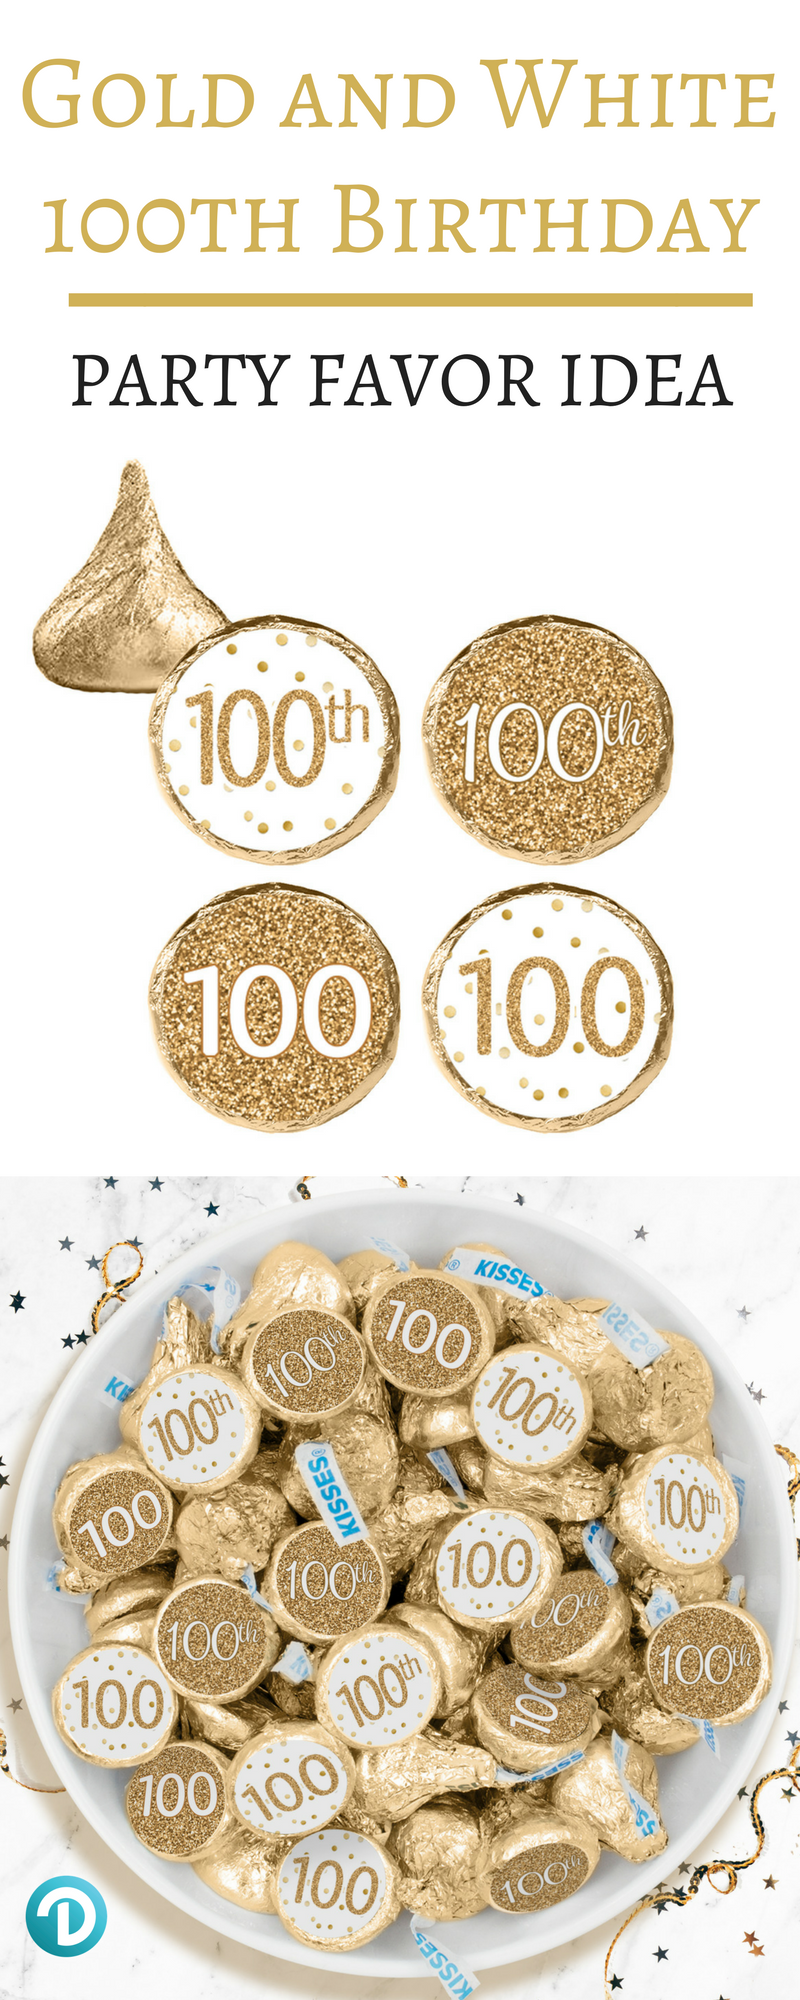 These White And Gold 100th Birthday Party Favor Stickers Are The Perfect Final Detail To Add To Your 100th Birthday Party Birthday Party Favors 100th Birthday